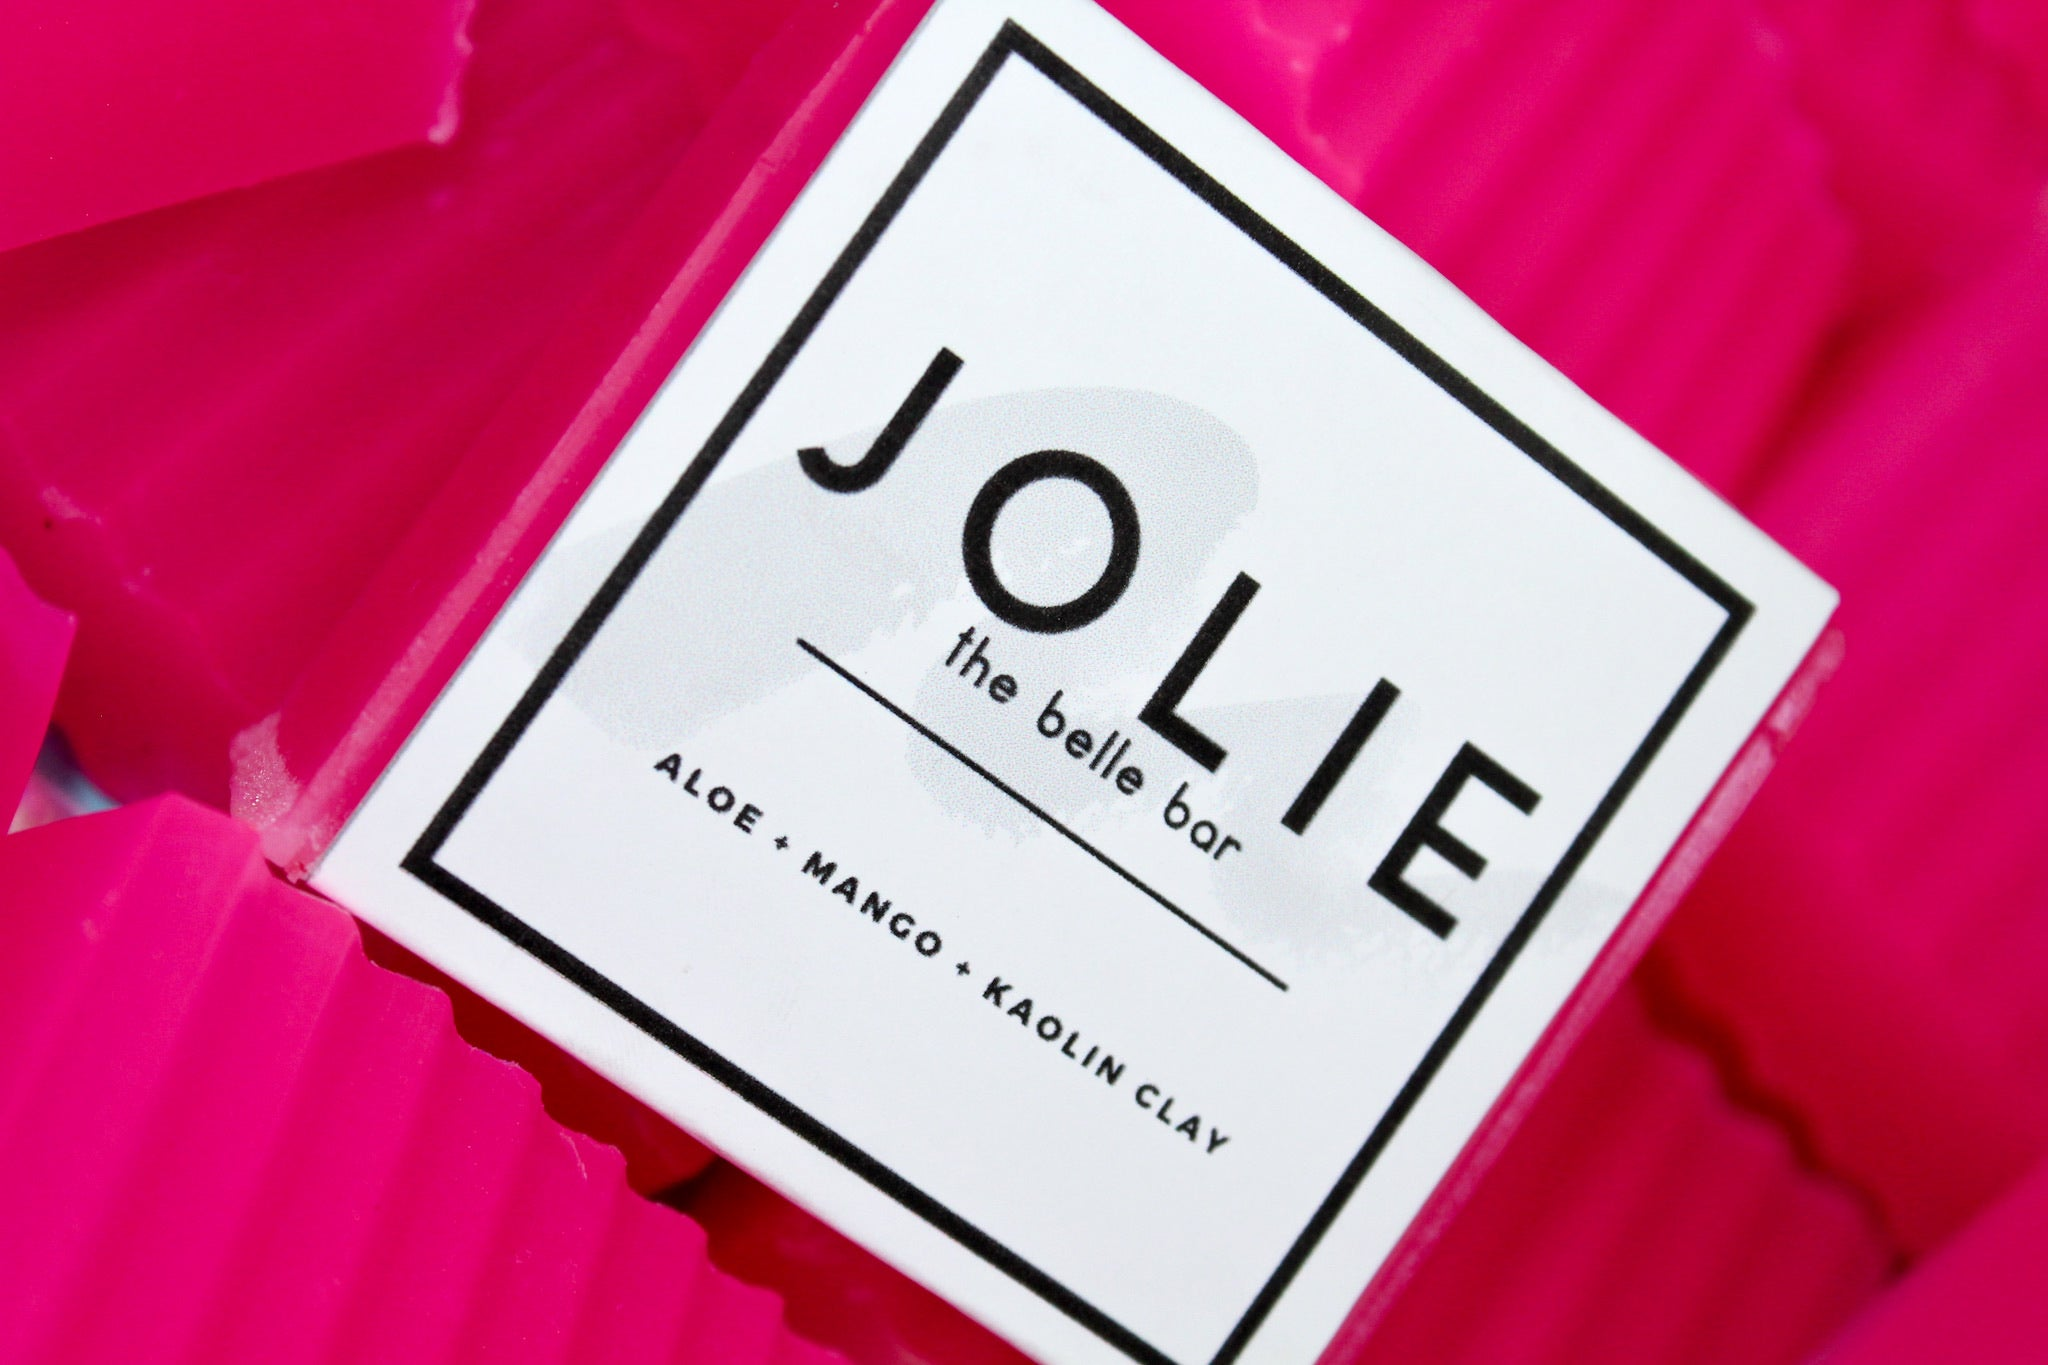 Jolie - the Belle bar